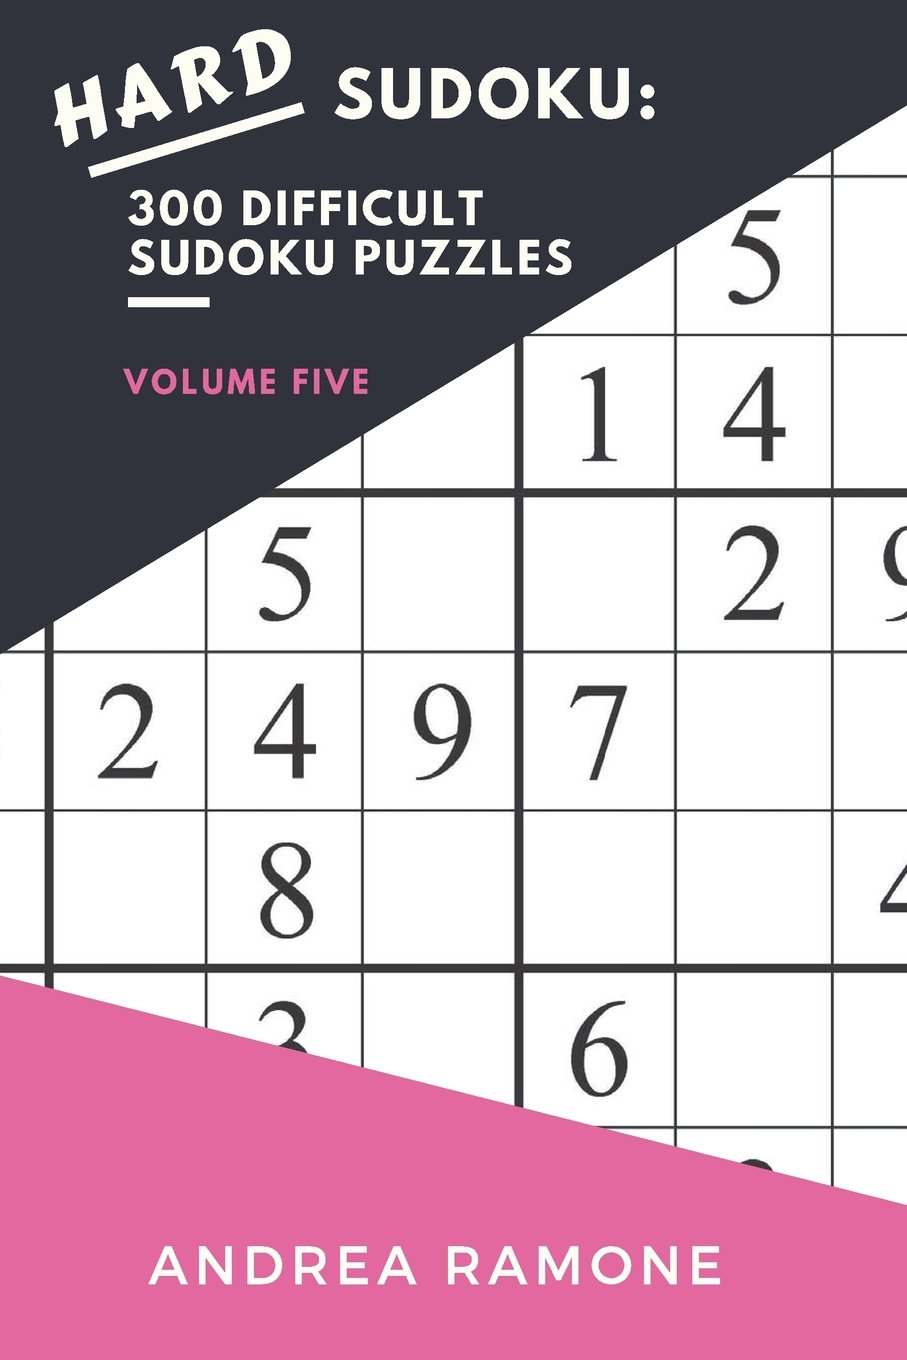 picture about Difficult Sudoku Printable named Demanding Sudoku: 300 Impossible Sudoku Puzzles: Amount 5